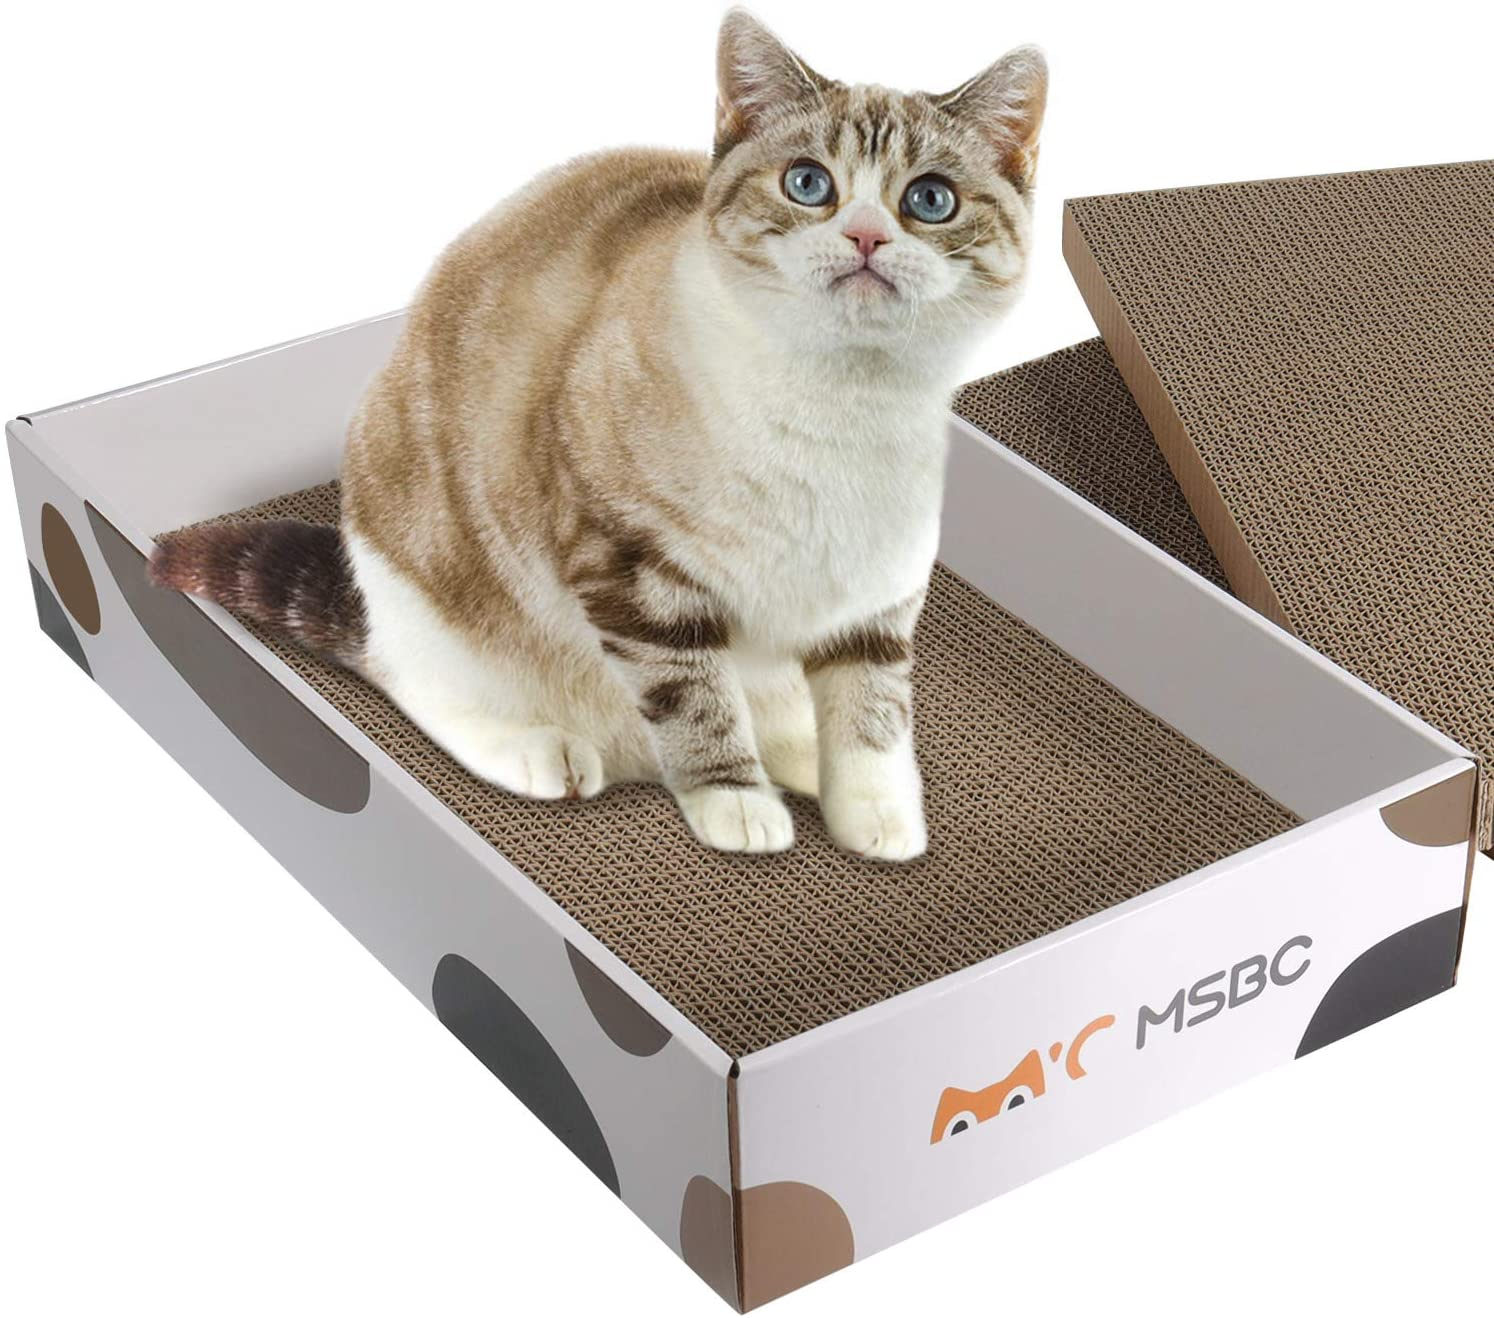 ComSaf Durable Cat Scratcher Cardboard Refill, Cat Scratch Pad, 3 in 1 Recyclable Corrugated Scratcher, Reversible Scratch Box, Scratcher Lounge for Furniture Protection, Cat Training Toy